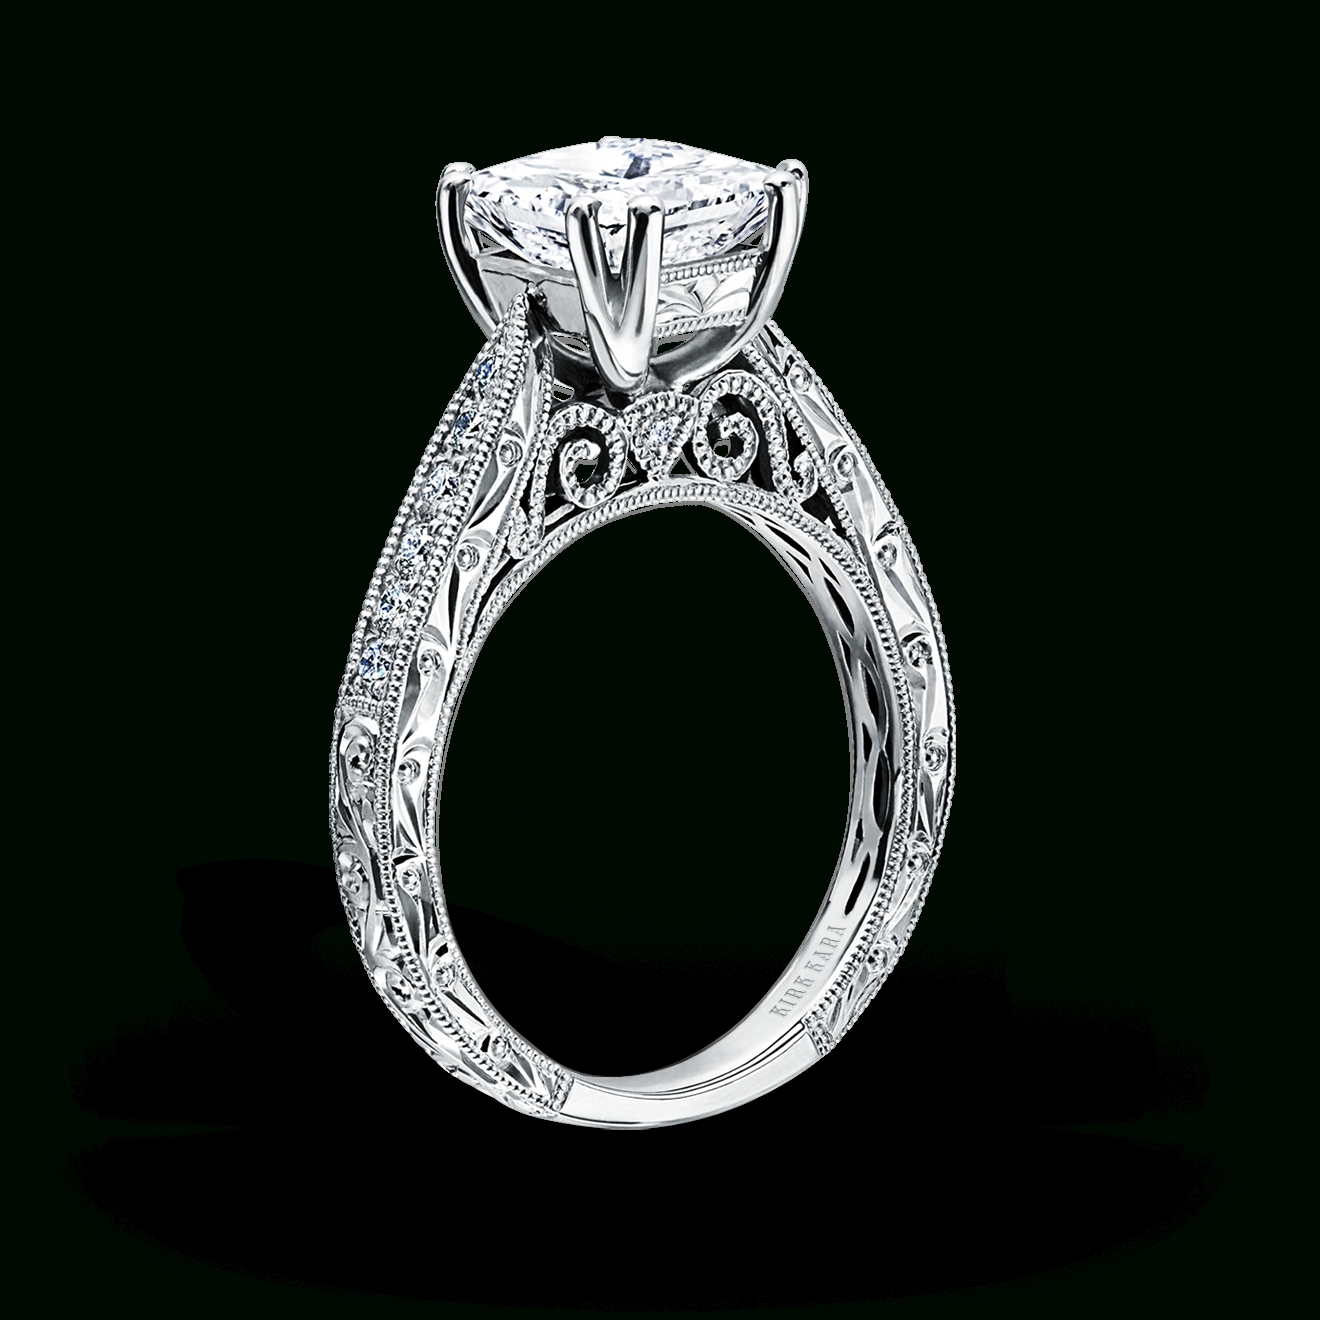 Engagement Rings : Diamond Wedding Ring Stunning Engagement Ring With Special Design Wedding Rings (View 3 of 15)